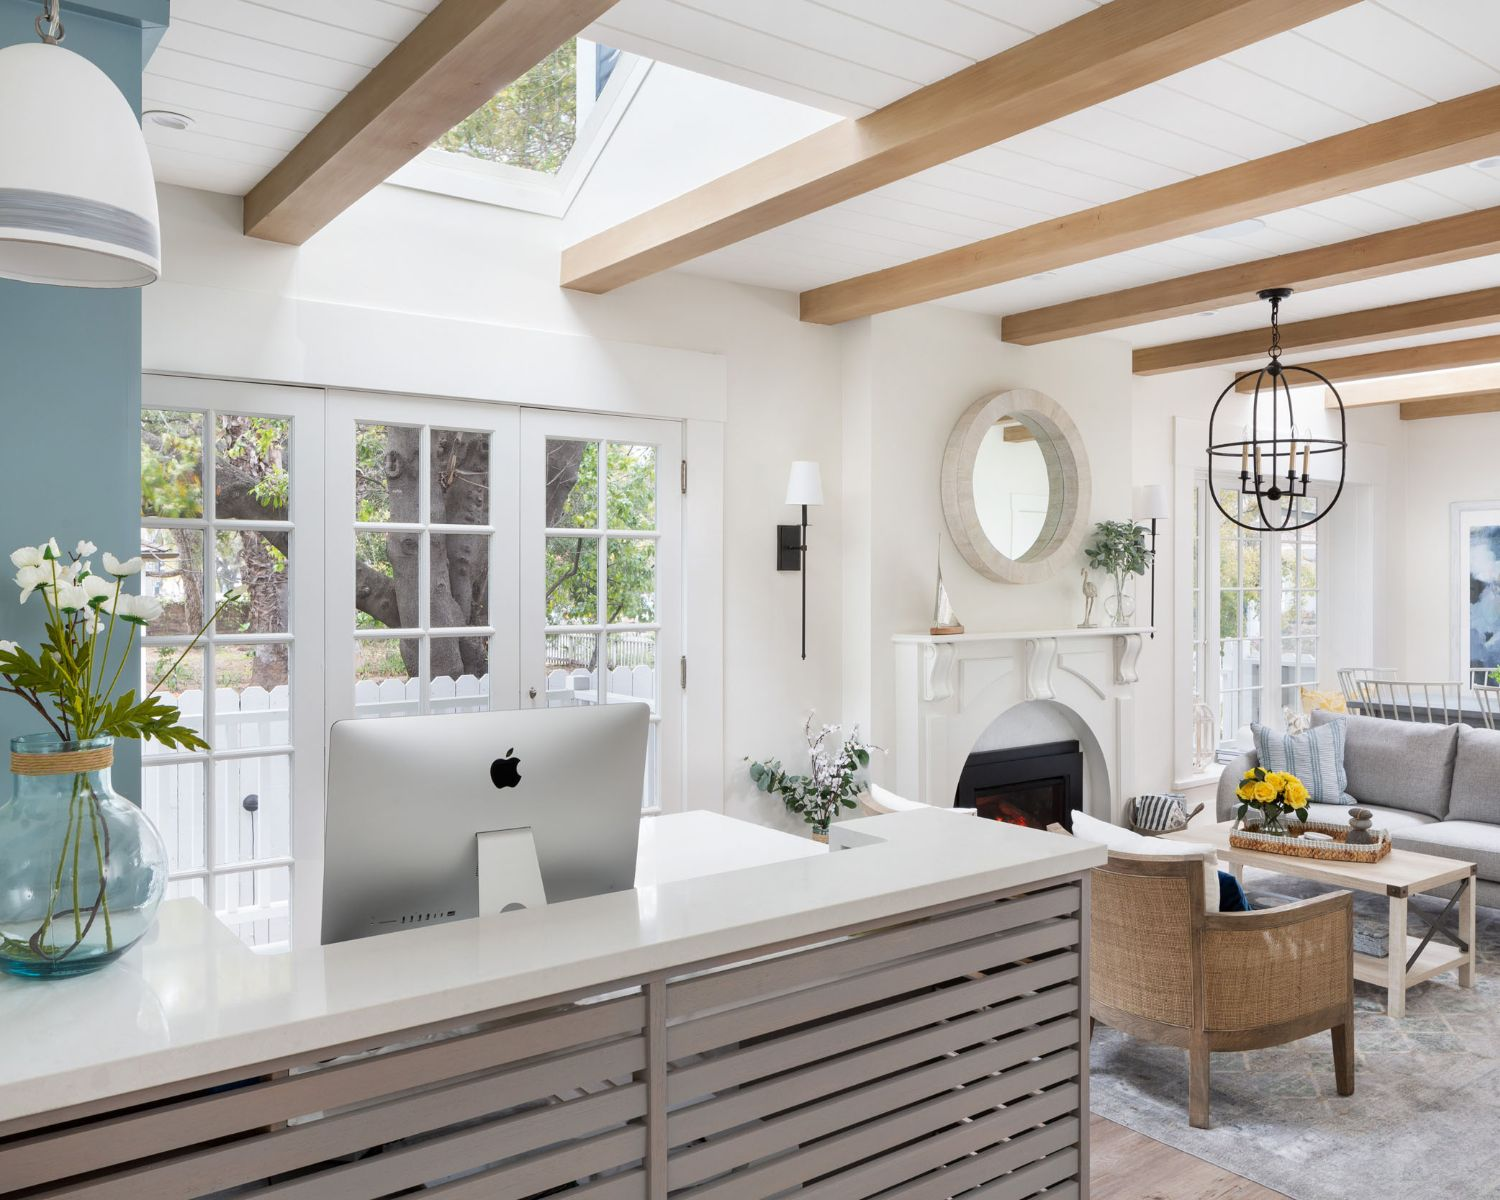 Welcome toHideaway Santa Barbara - Located three blocks from the beach, six blocks from the famed Funk Zone and a beautiful stroll to the harbor, Hideaway Santa Barbara is an exciting new boutique hotel — meticulously curated, and extensively renovated for 2019.